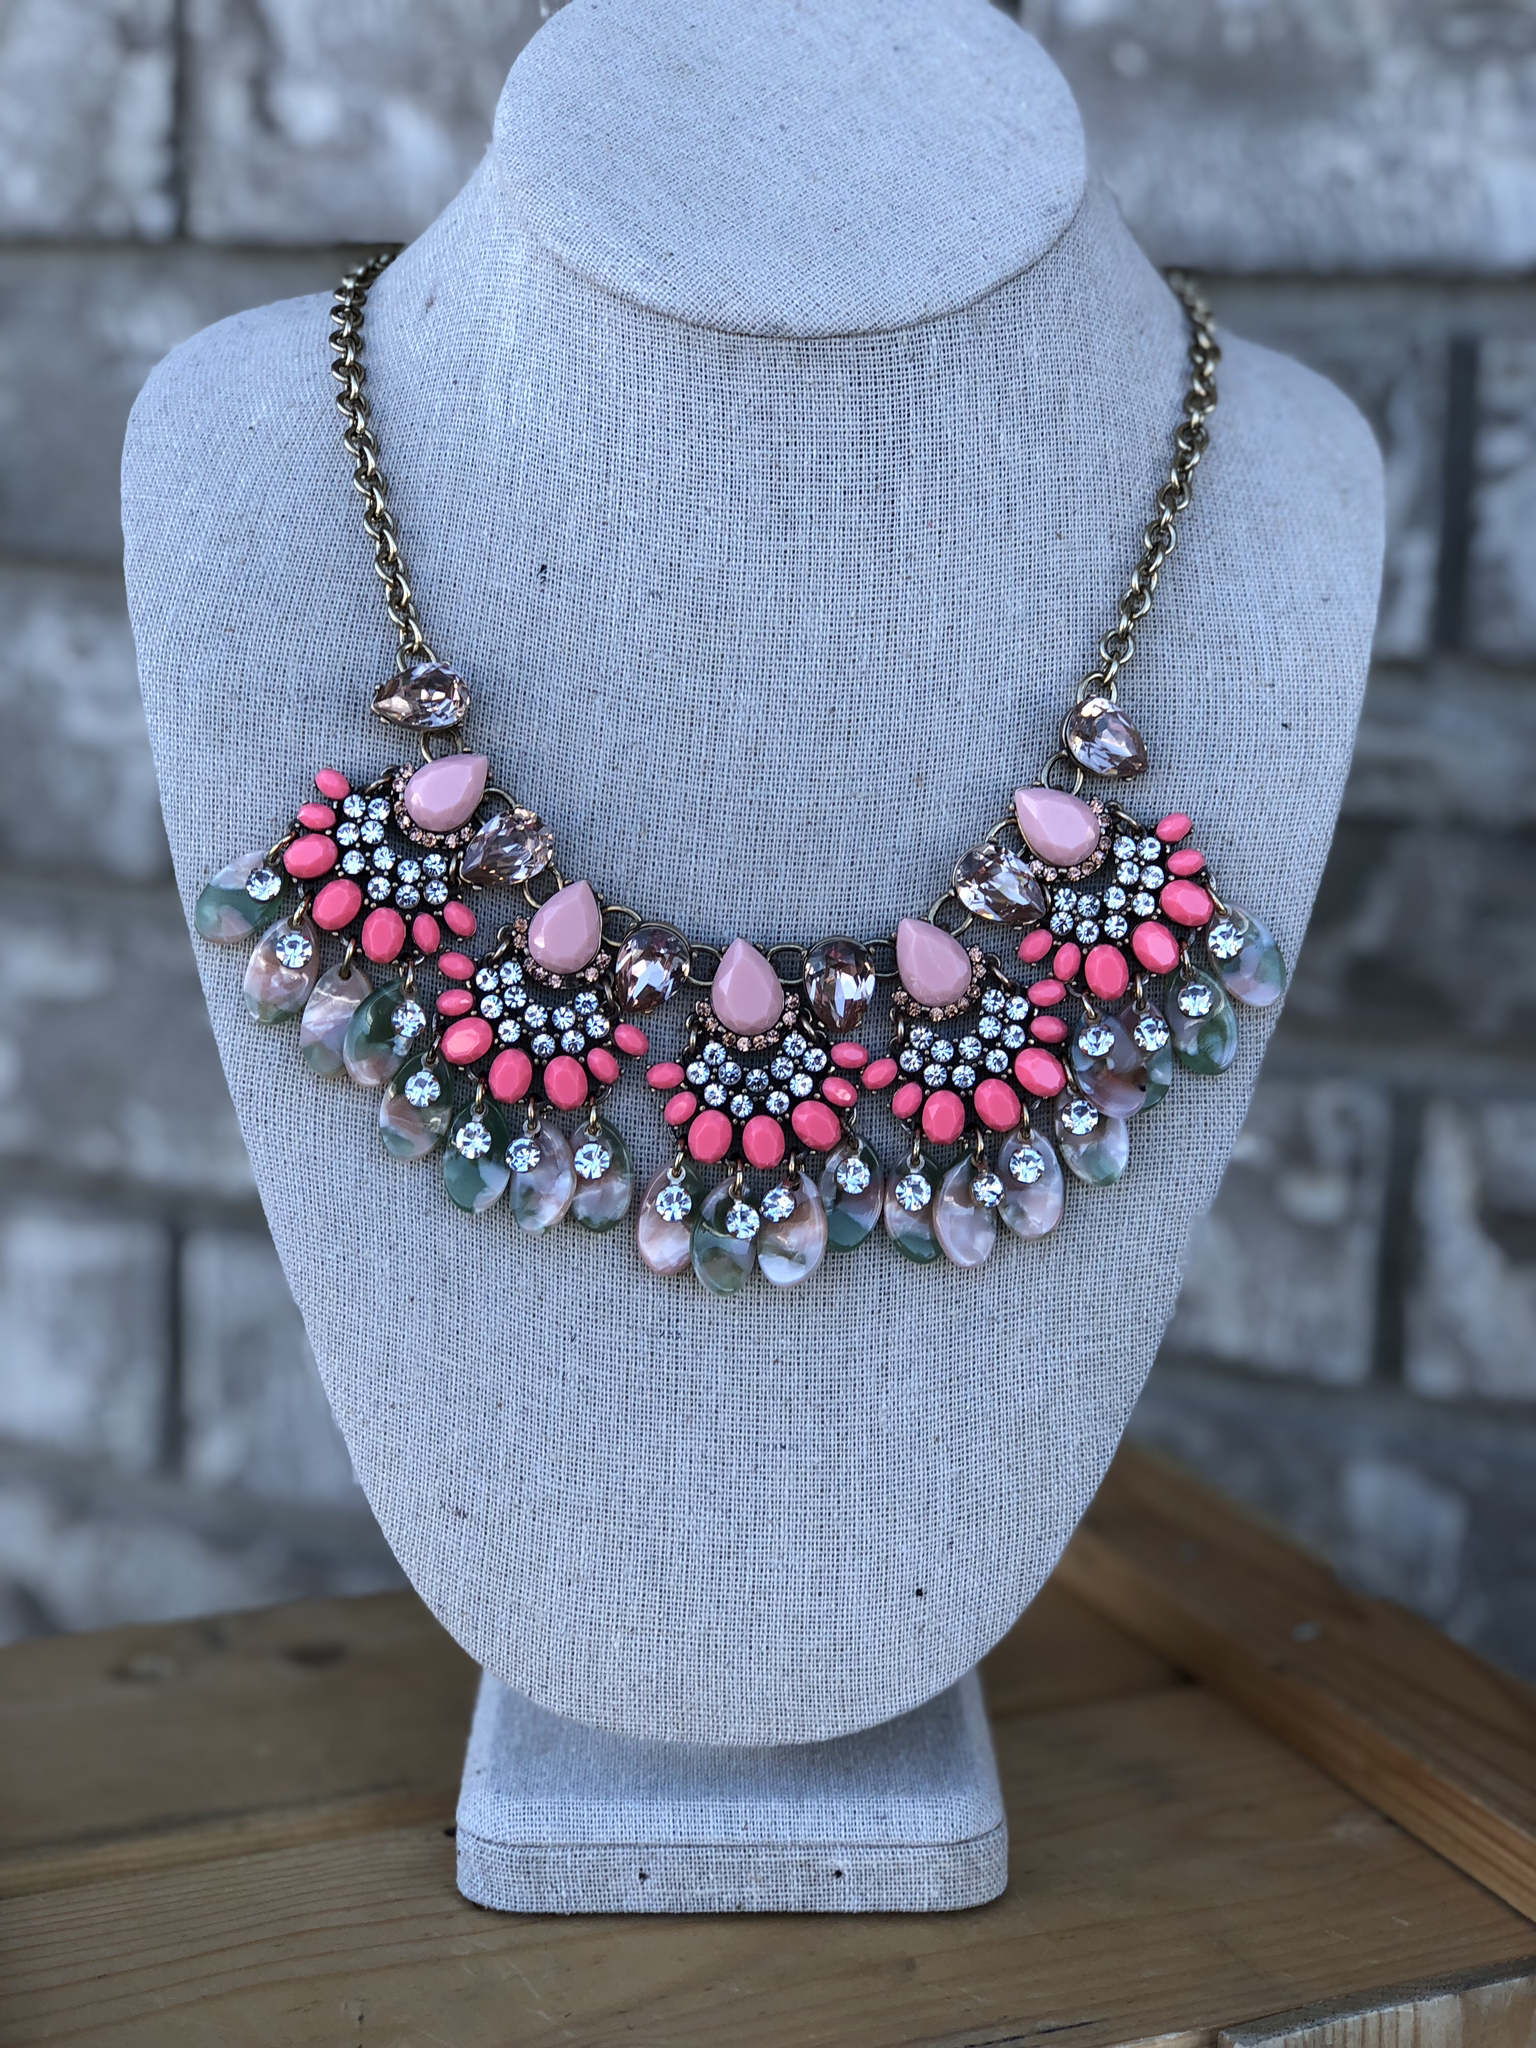 The Coral Cruise Statement Necklace